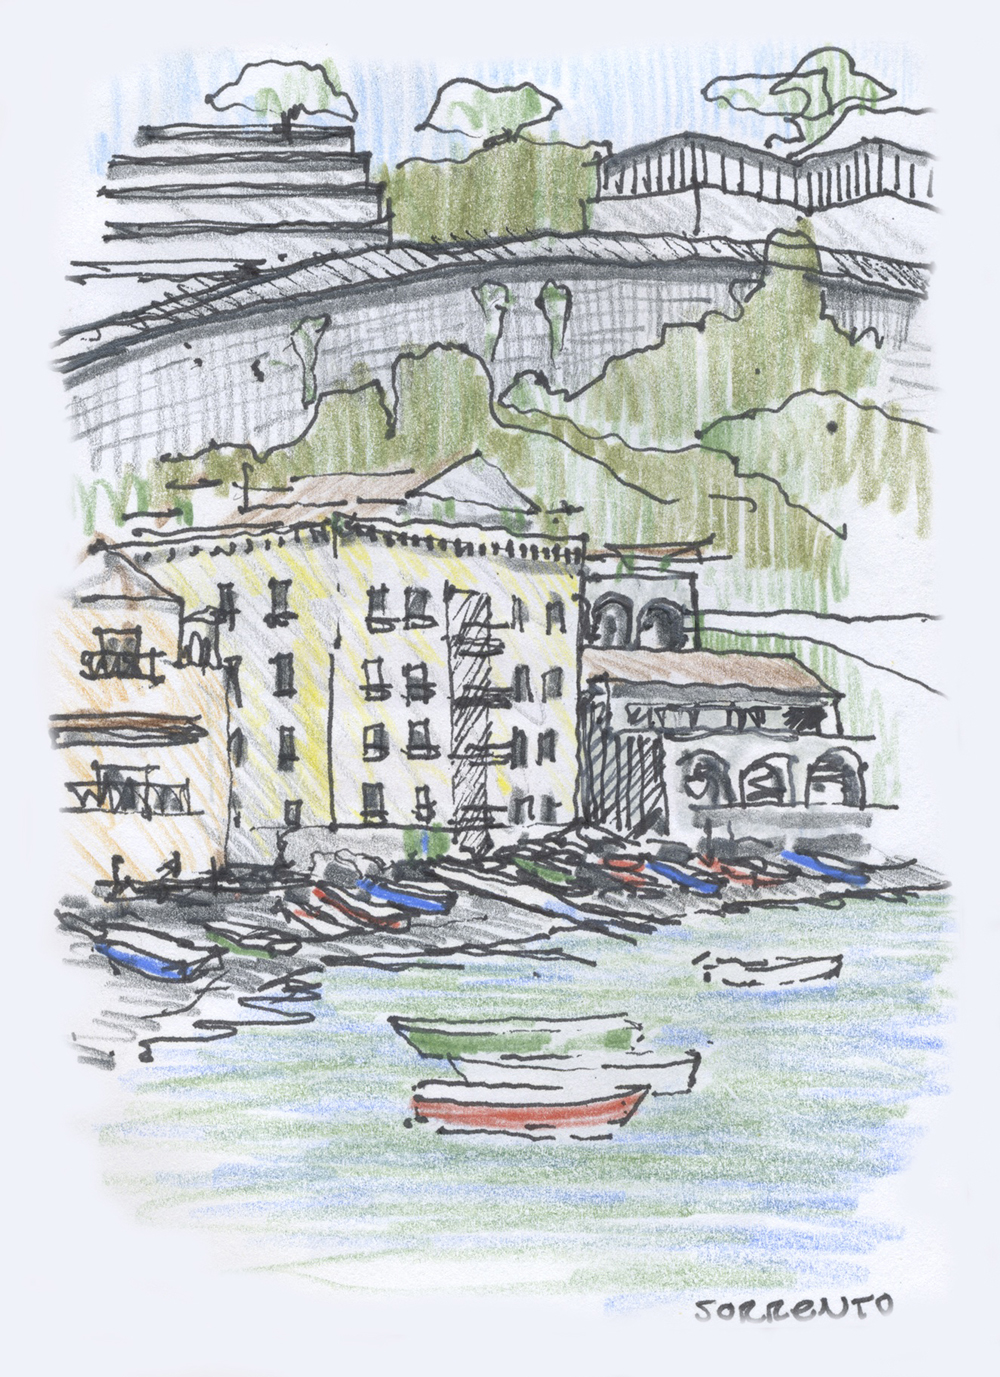 sorrento sketch.jpg